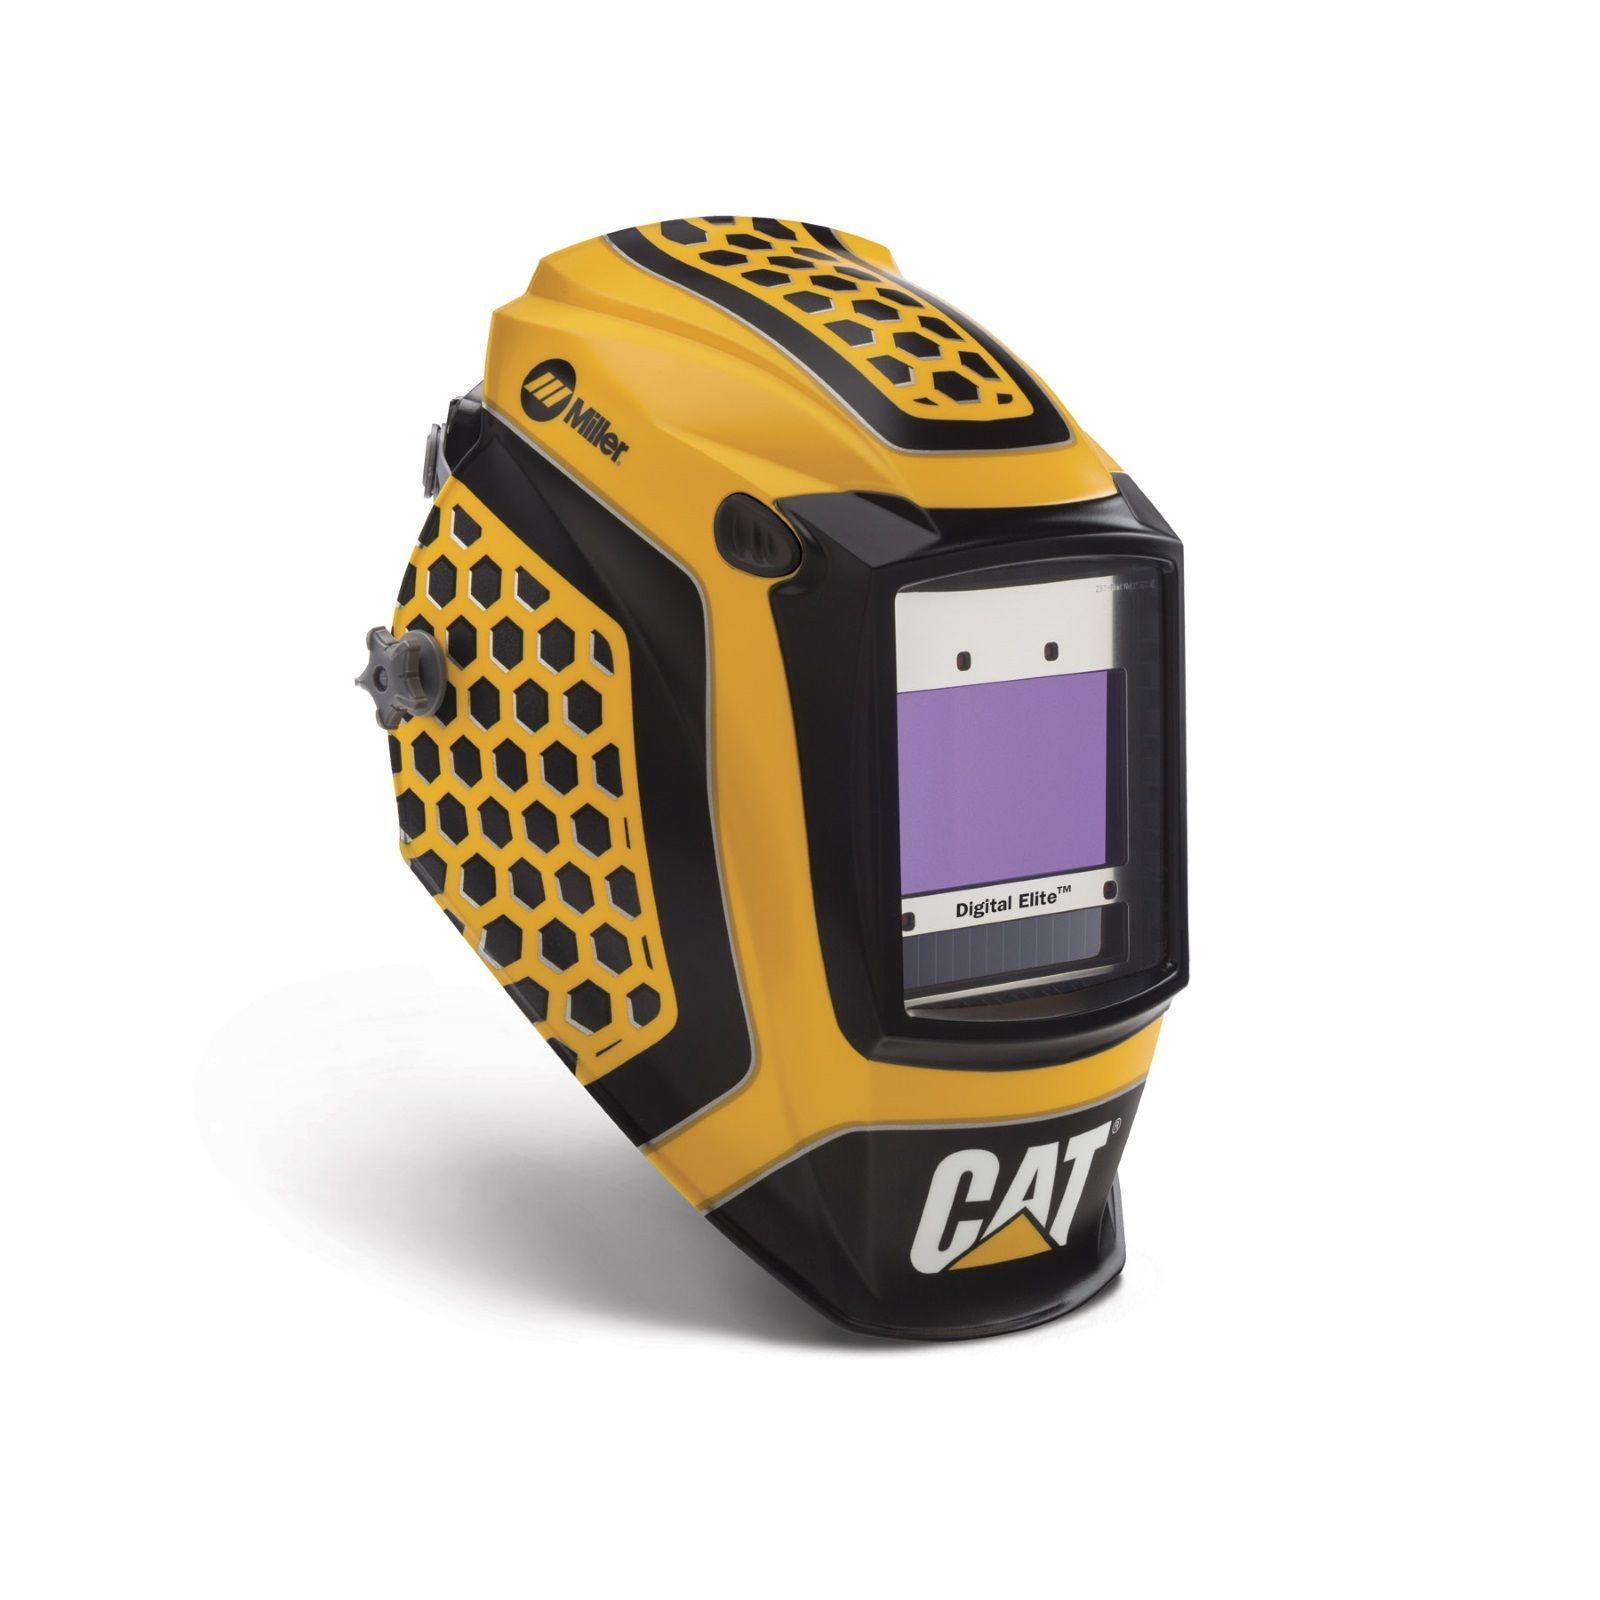 Details about Miller Cat Edition 1 Digital Elite Auto